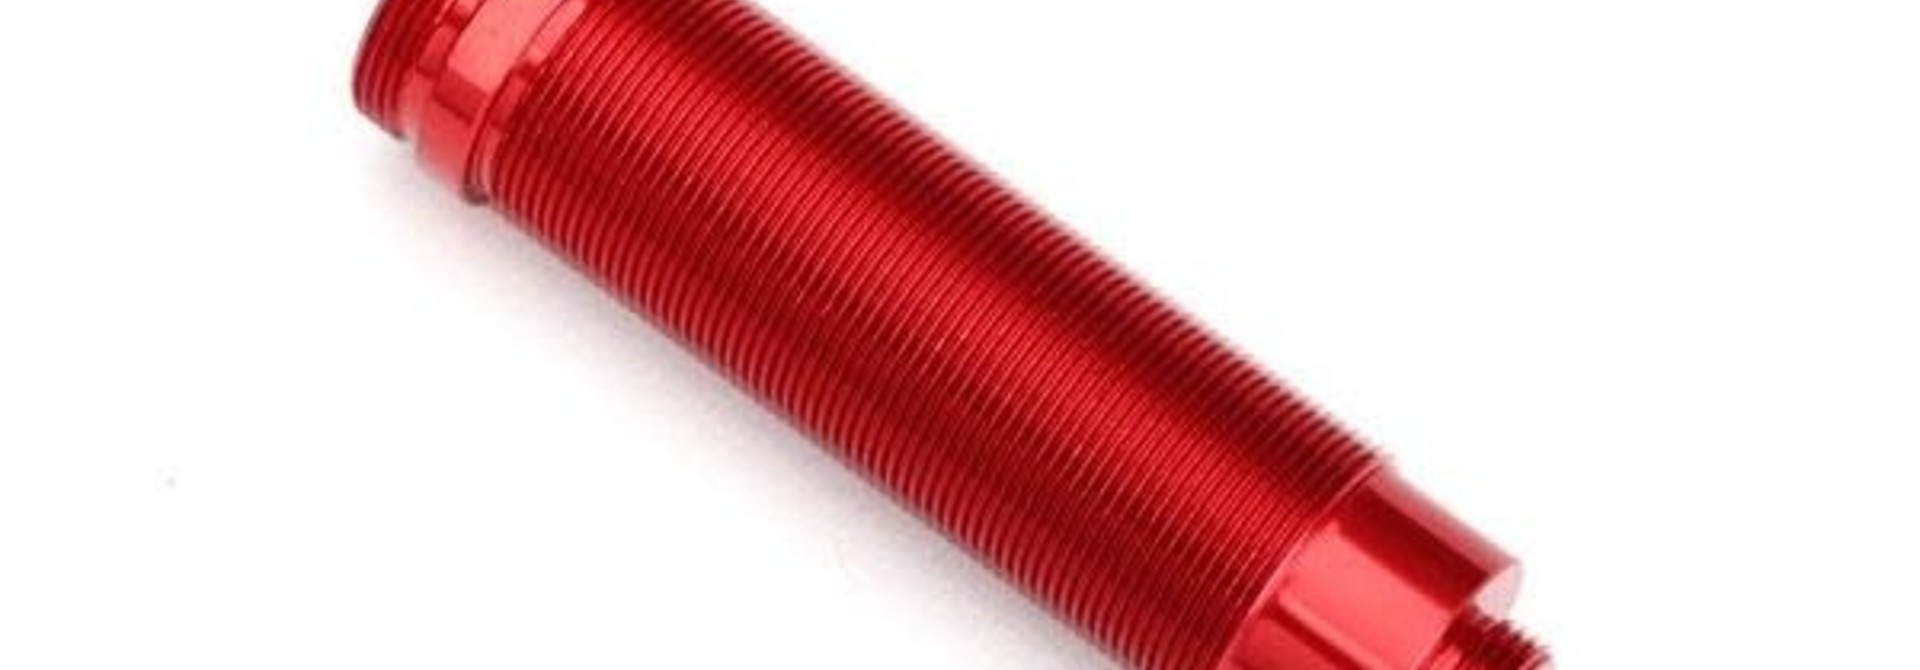 Body, GTR shock, 64mm, aluminum (red-anodized) (front, threaded)